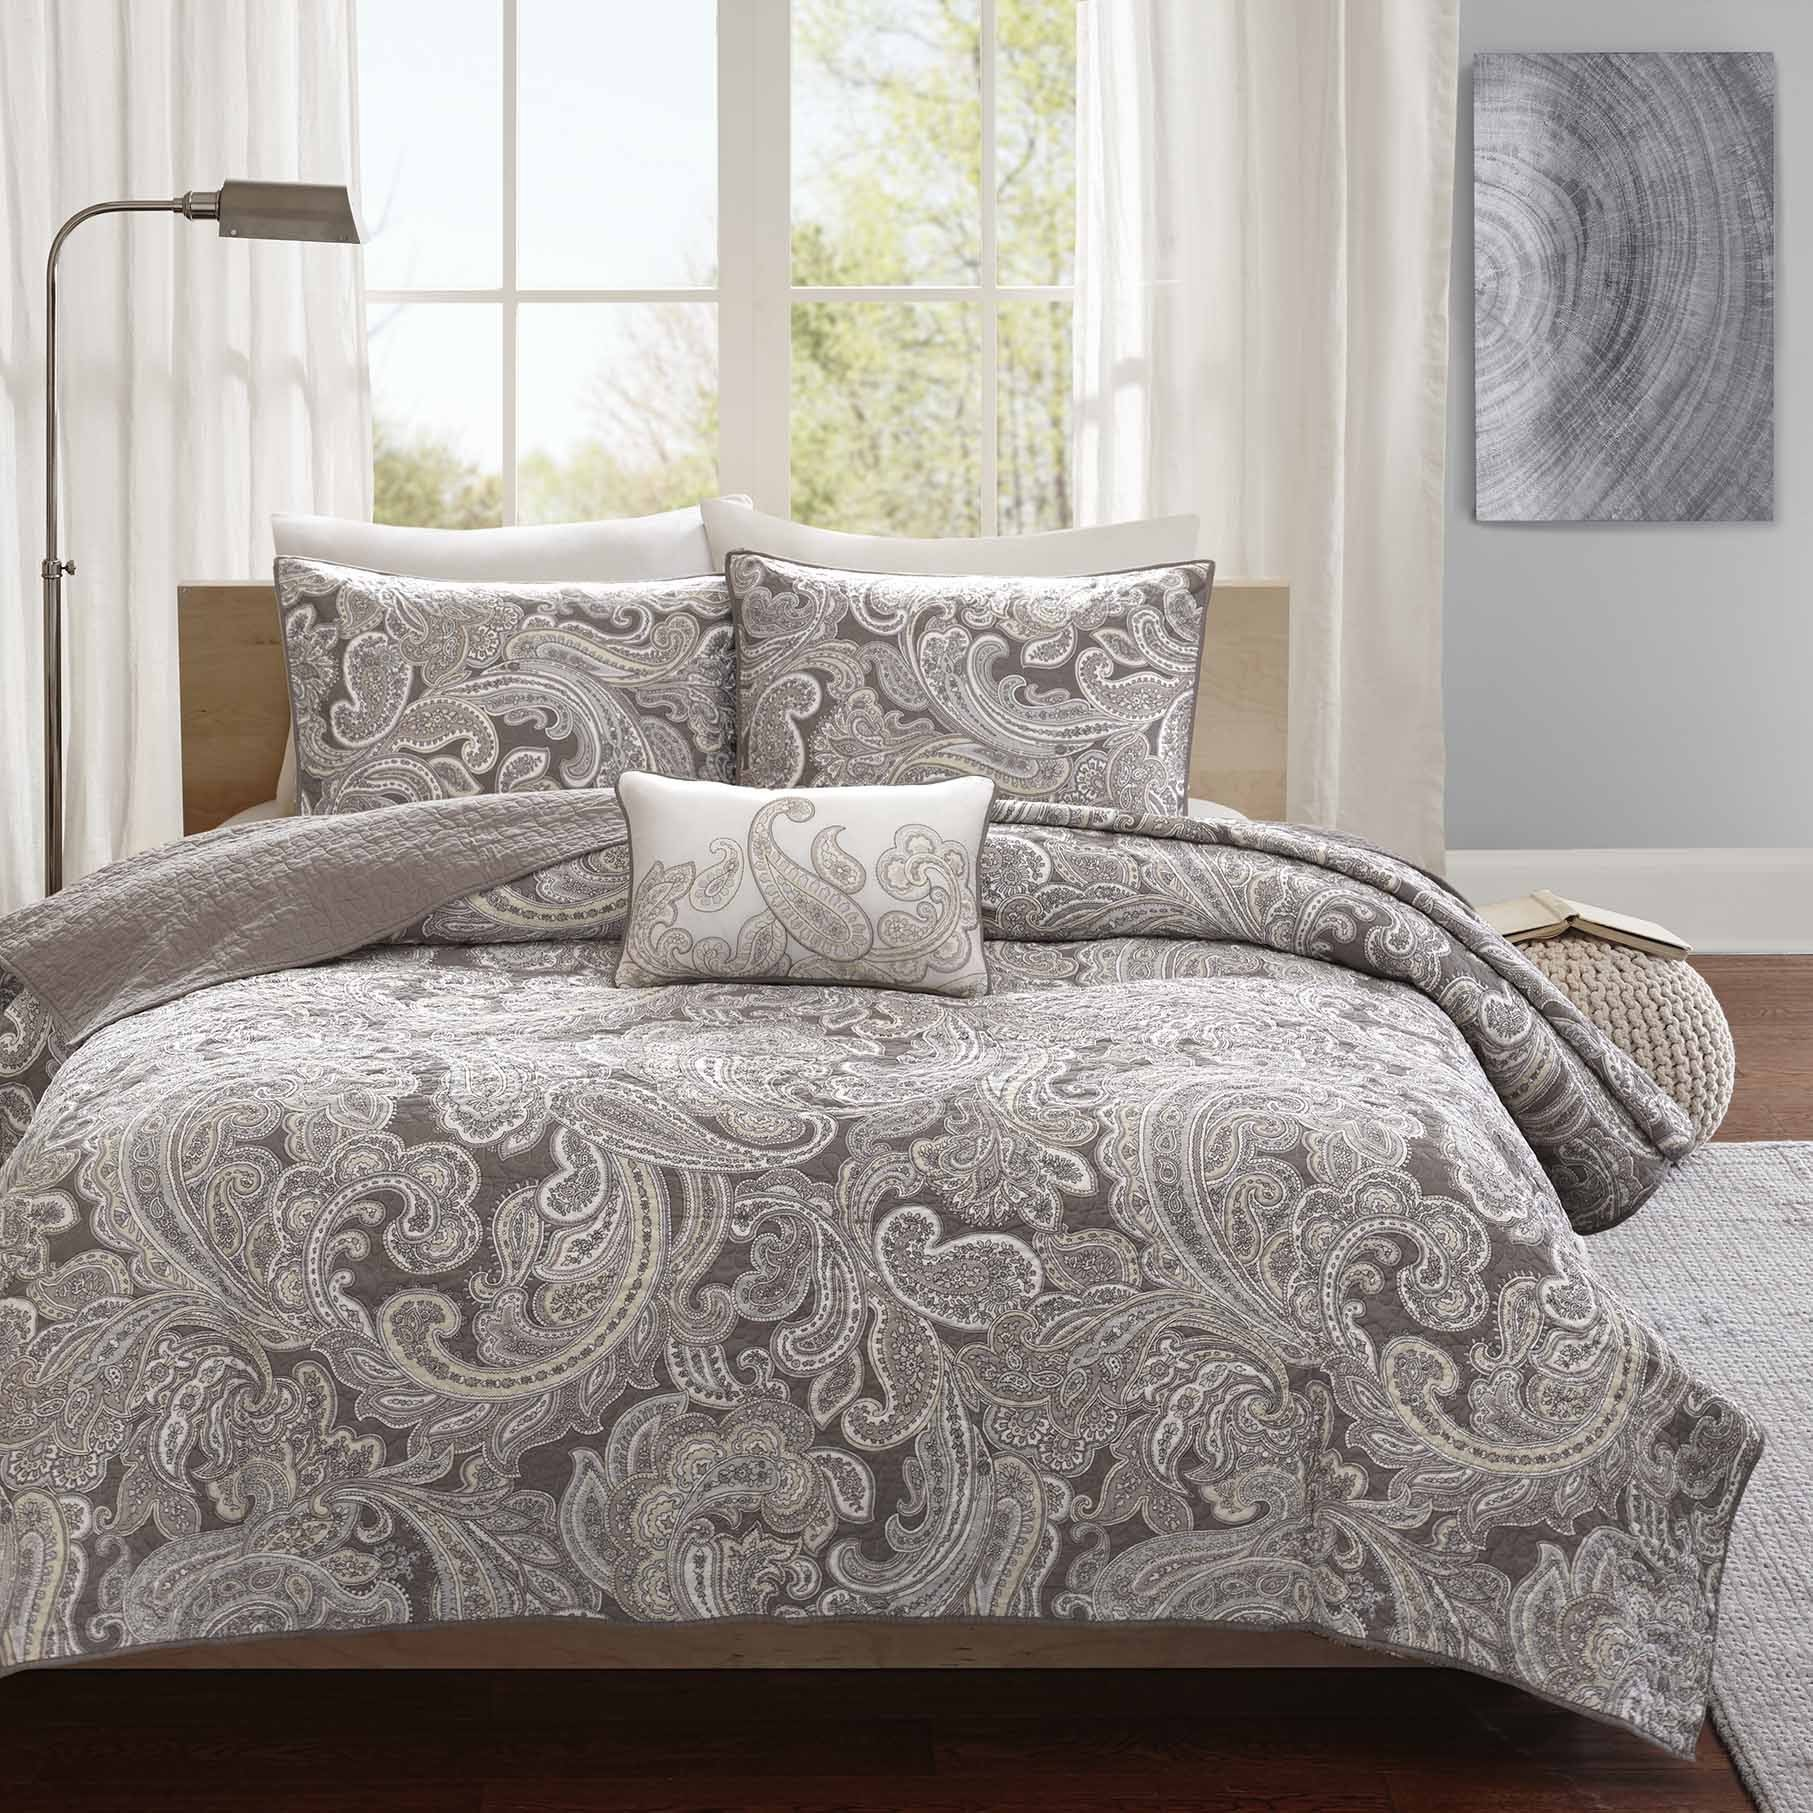 madison quilts dibinekadar bedroom set detail park quilt decoration comforter